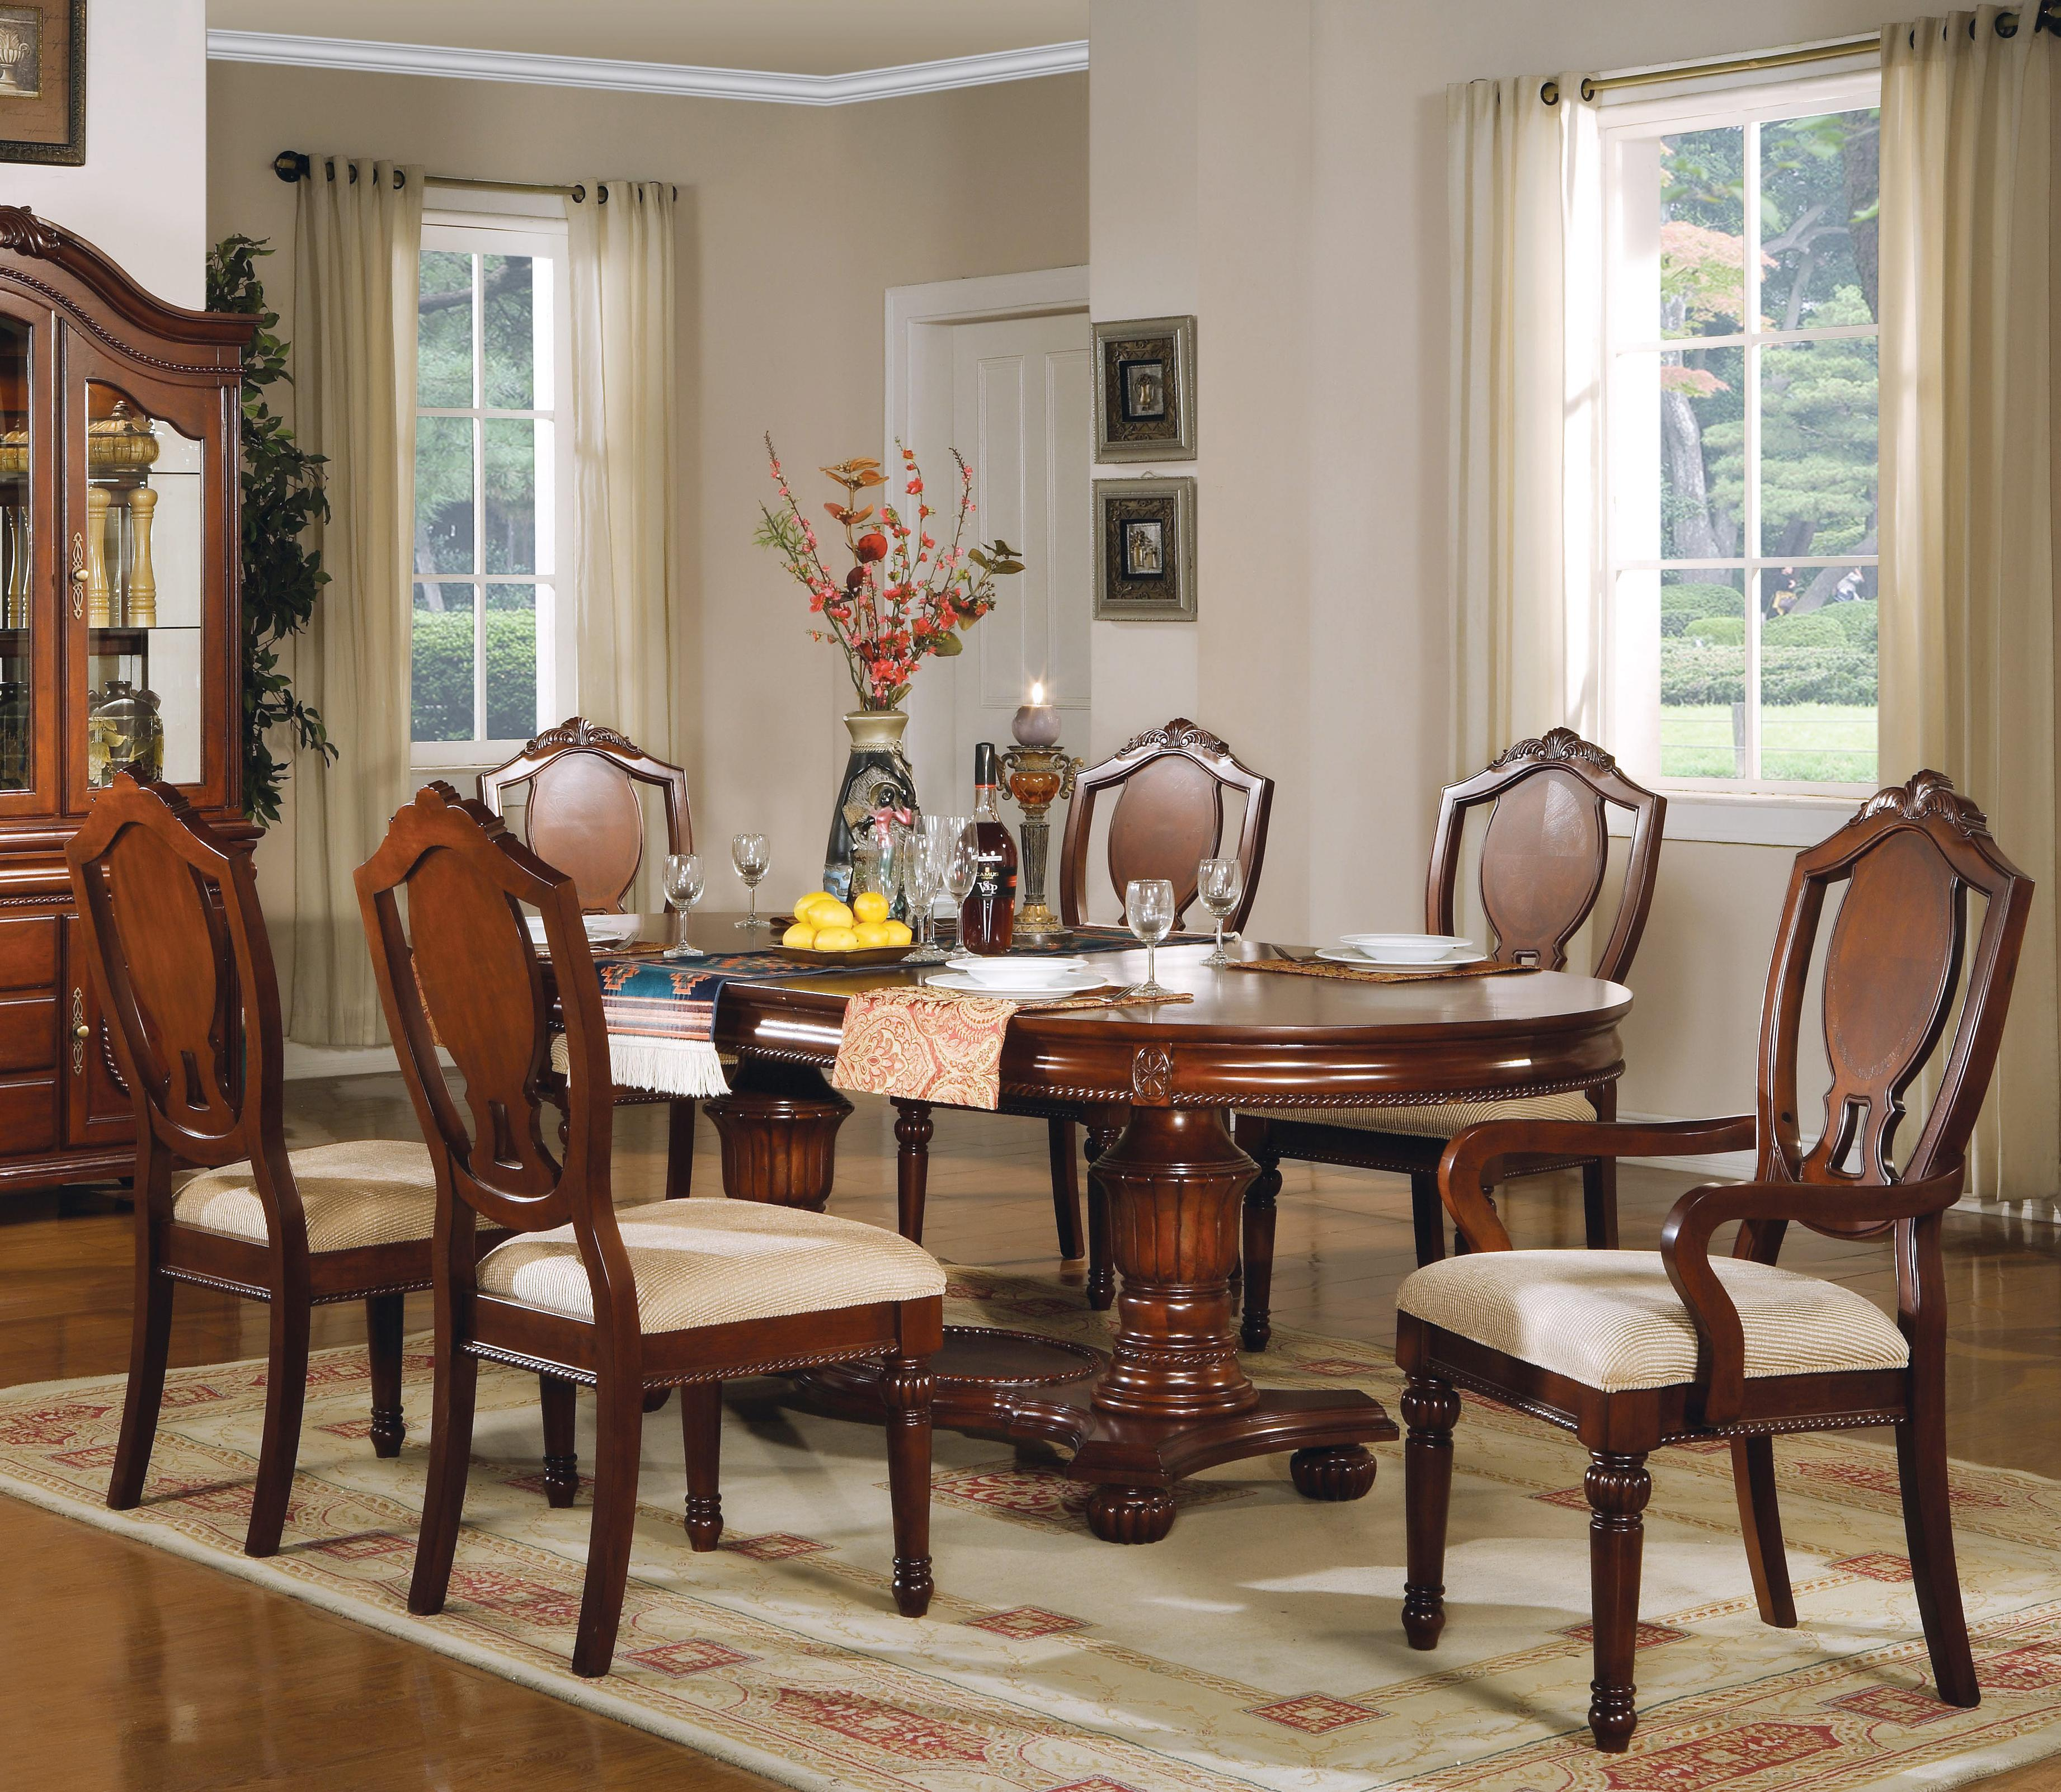 11800 7 pc Table and Chairs Set by Acme Furniture at A1 Furniture & Mattress